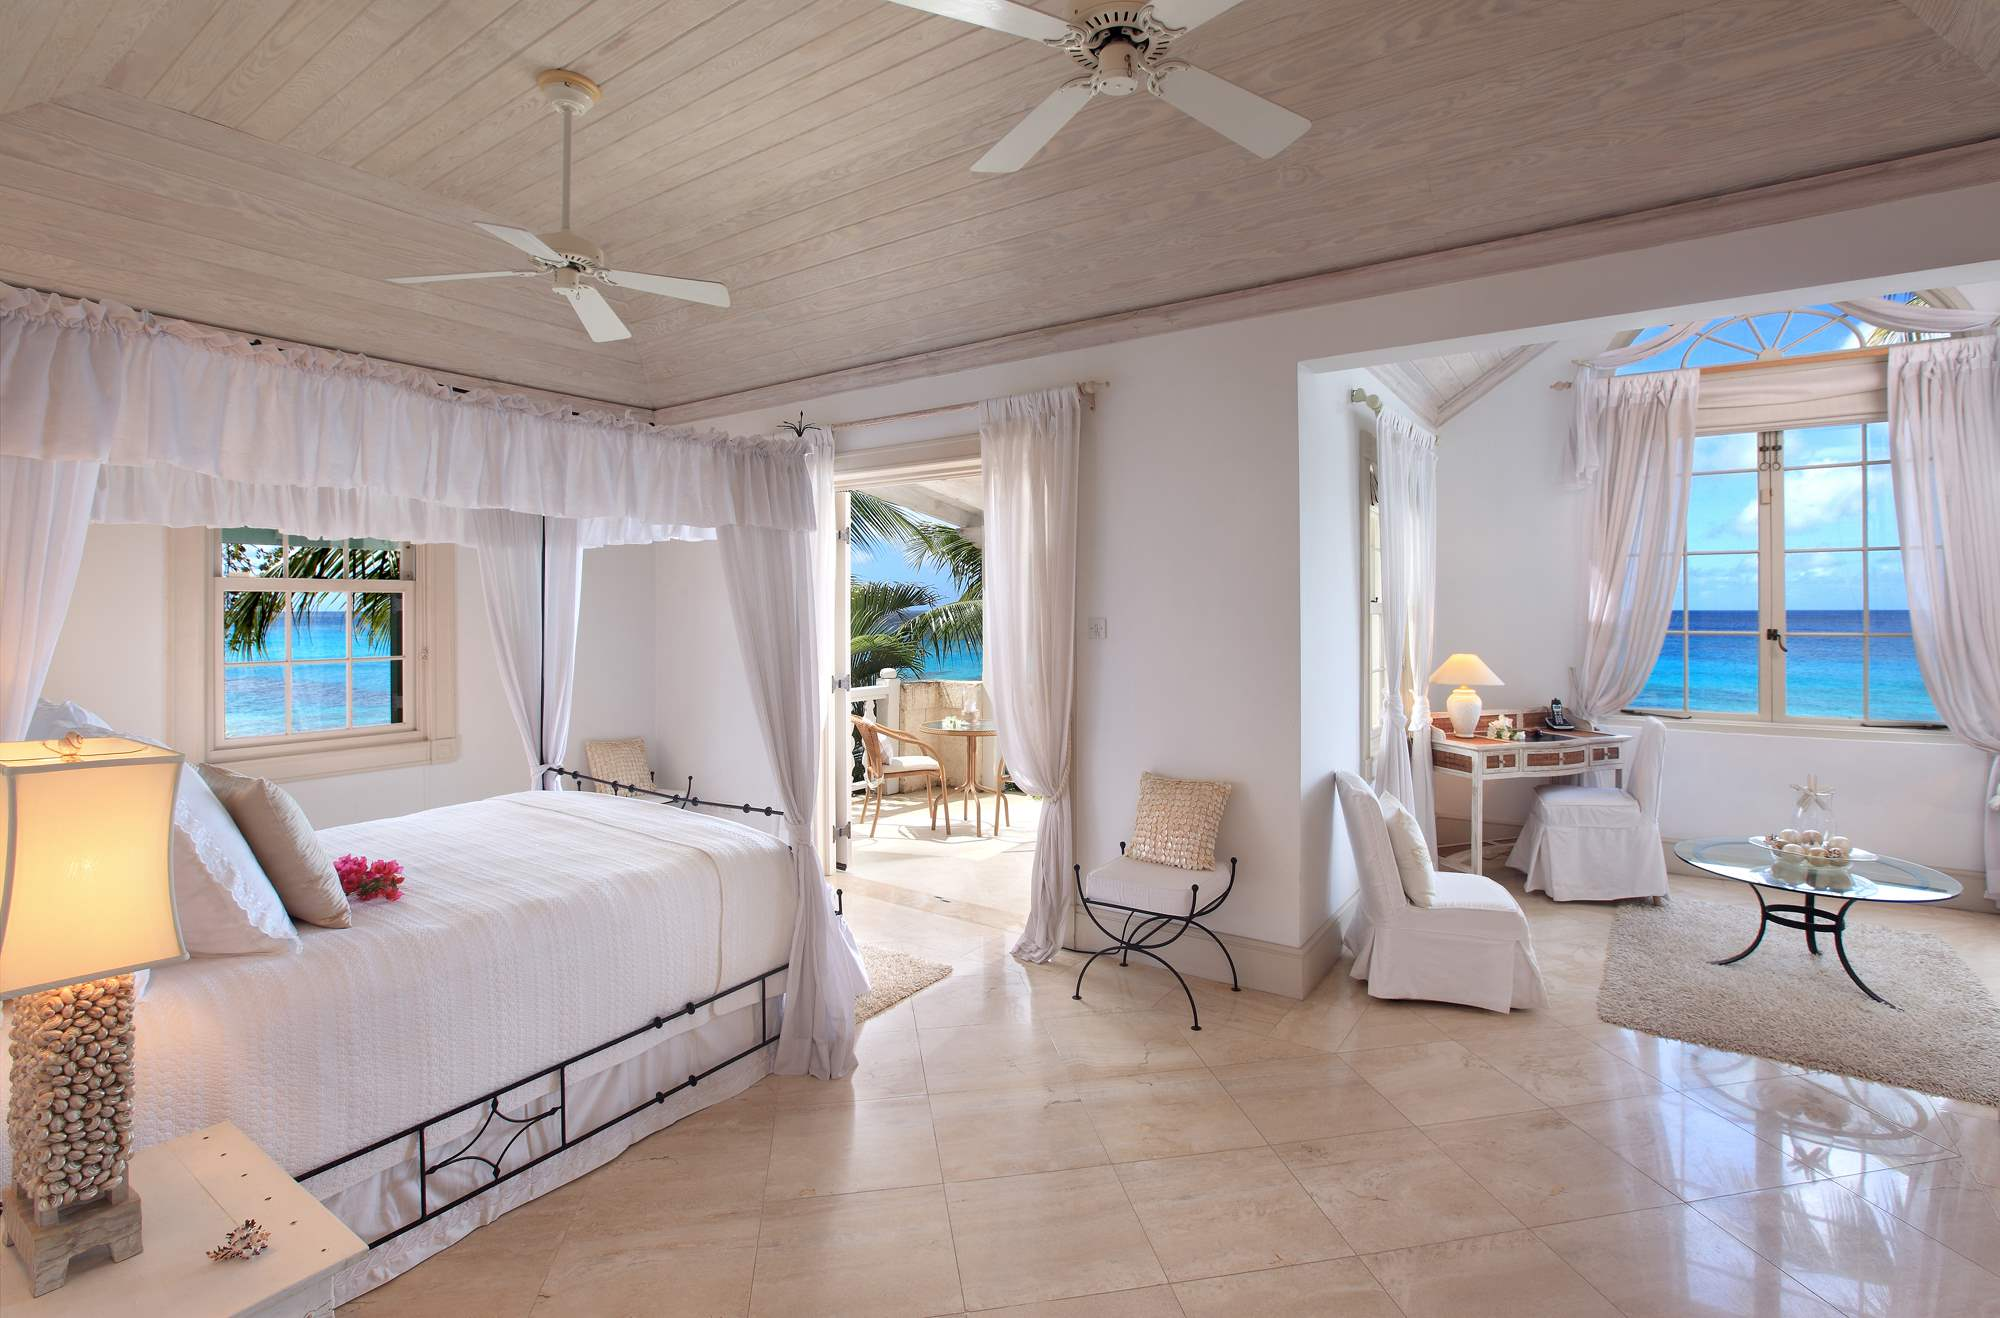 Caprice, 4 bedroom villa in St. James & West Coast, Barbados Photo #8